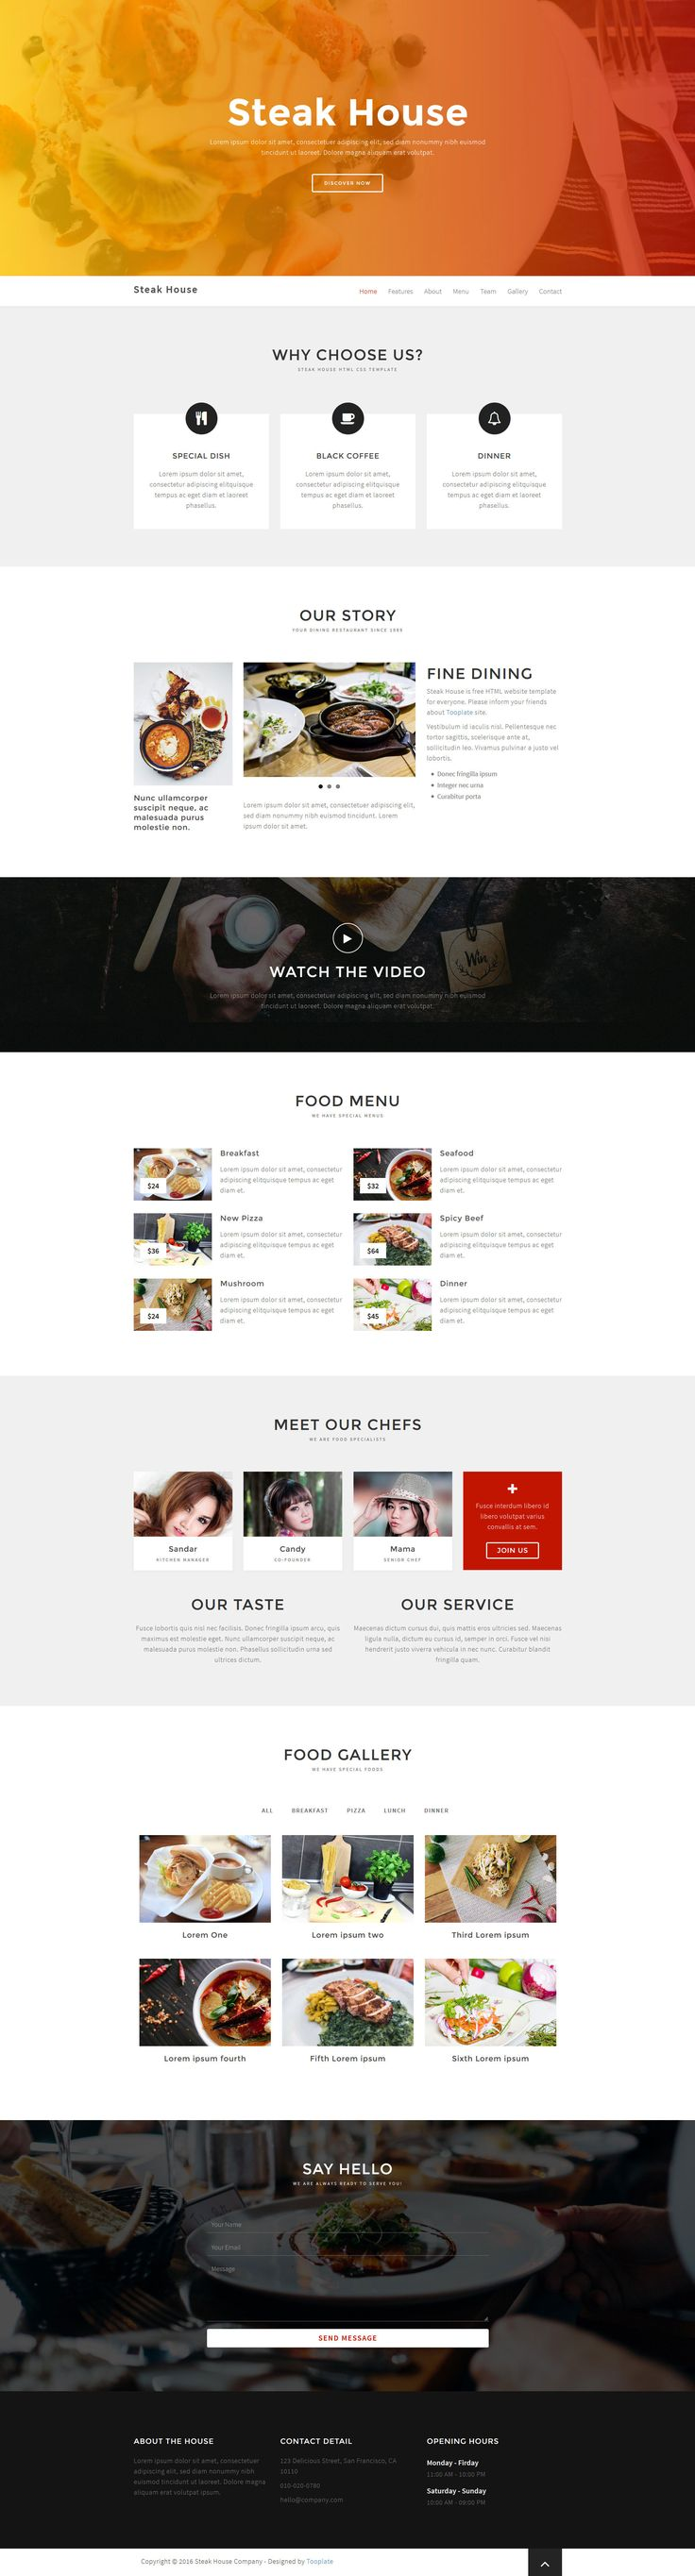 Steak House is a free responsive HTML5 Bootstrap One page HTML5 website template. It features Food menu, slider, gallery, about, contact sections and a semi-transparent CSS gradient background images. Built with HTML5 and CSS3 and based on Bootstrap 3.